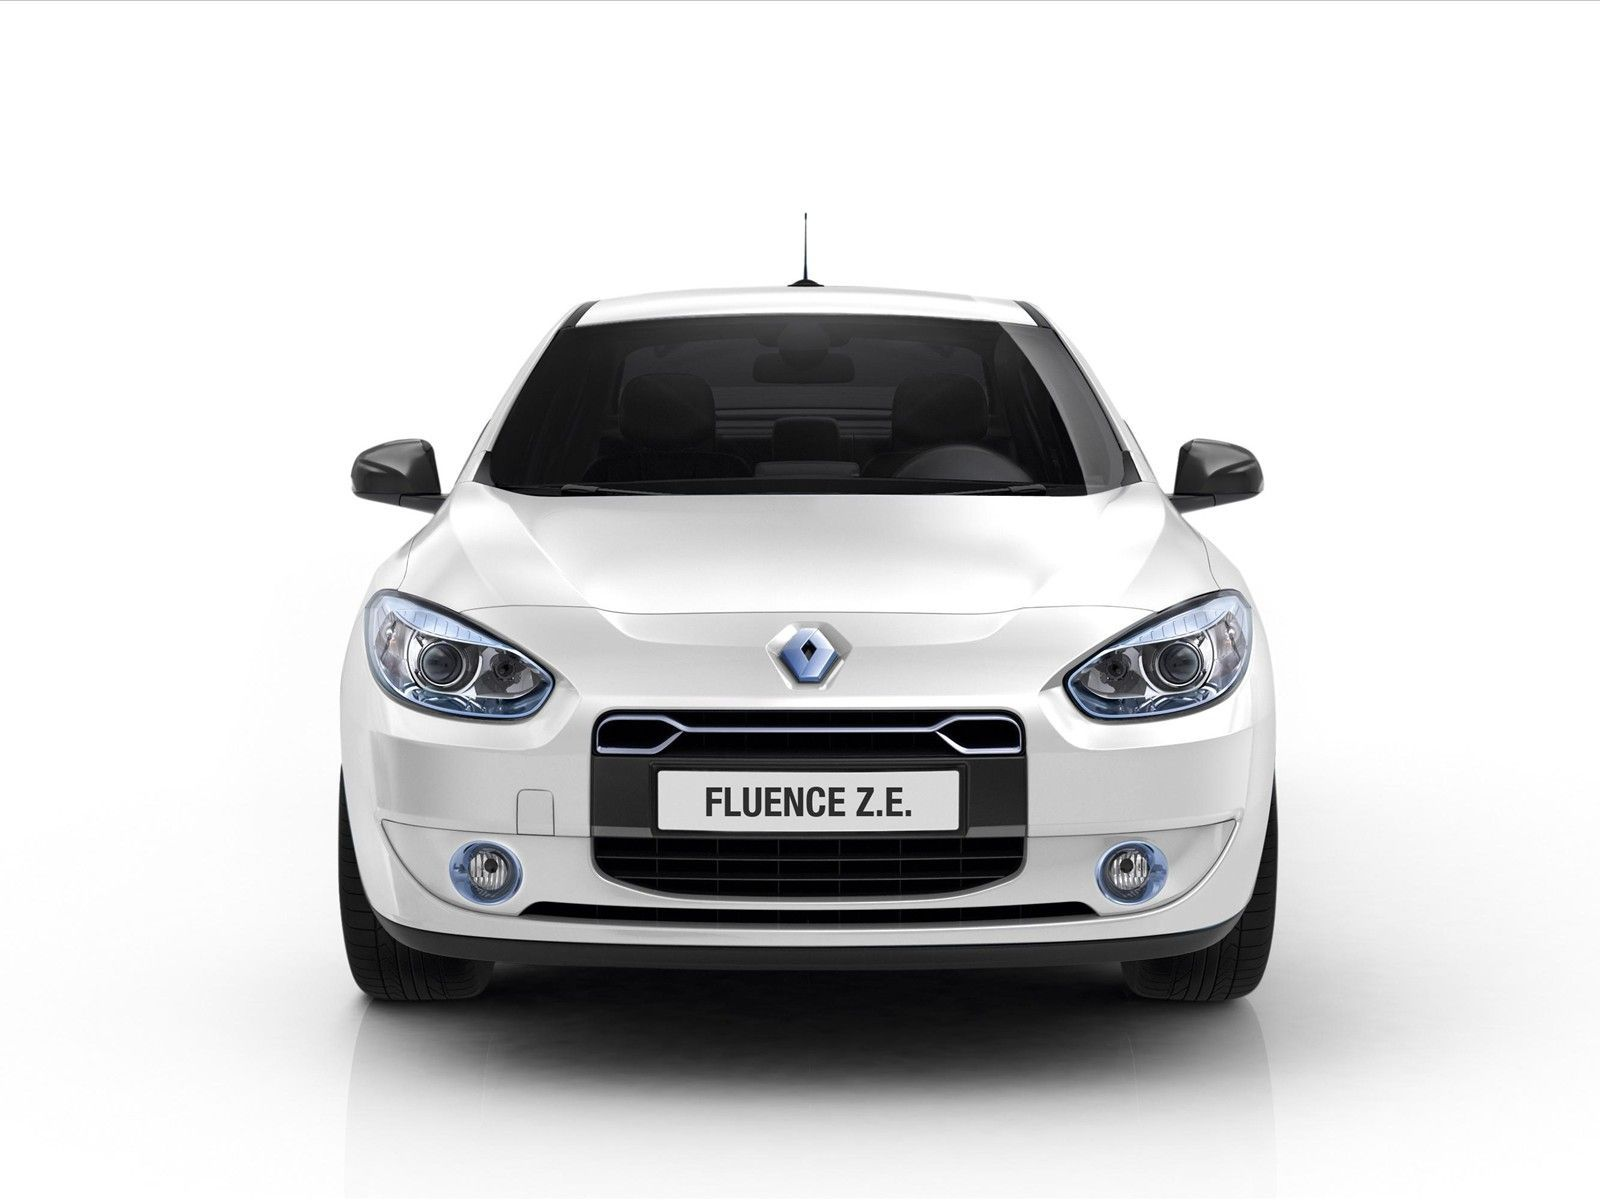 renault fluence ze hd wallpaper http 1sthdwallpapers com renault rh pinterest com car rental manual transmission toronto car rental manual transmission vancouver